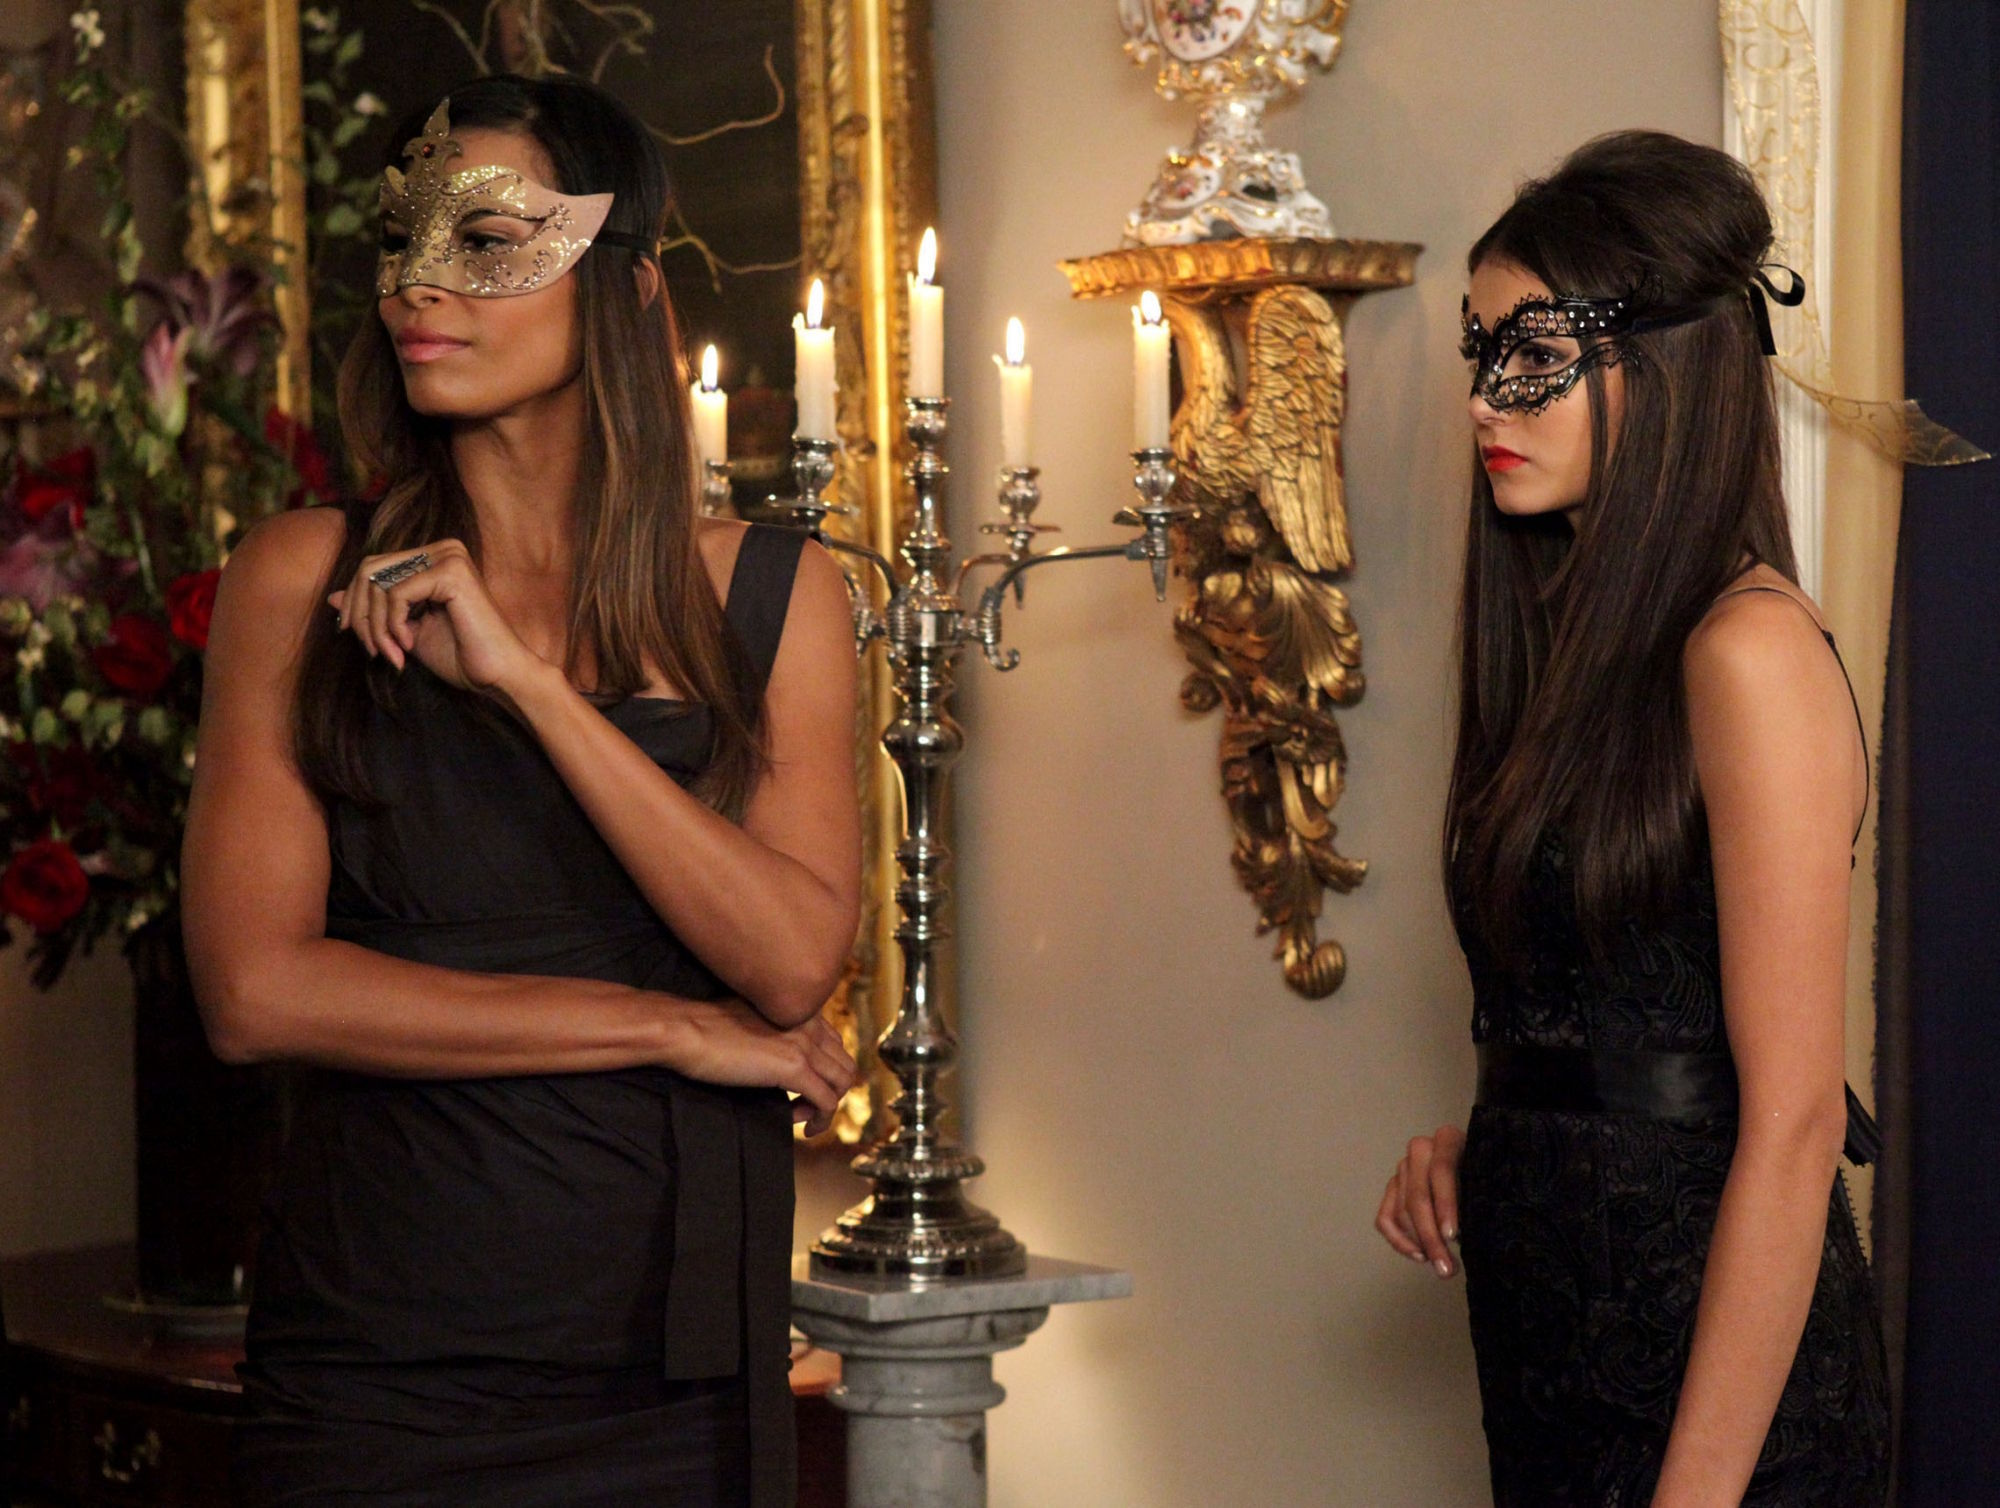 http://images4.fanpop.com/image/photos/16200000/2-07-Masquerade-the-vampire-diaries-16220618-2000-1508.jpg